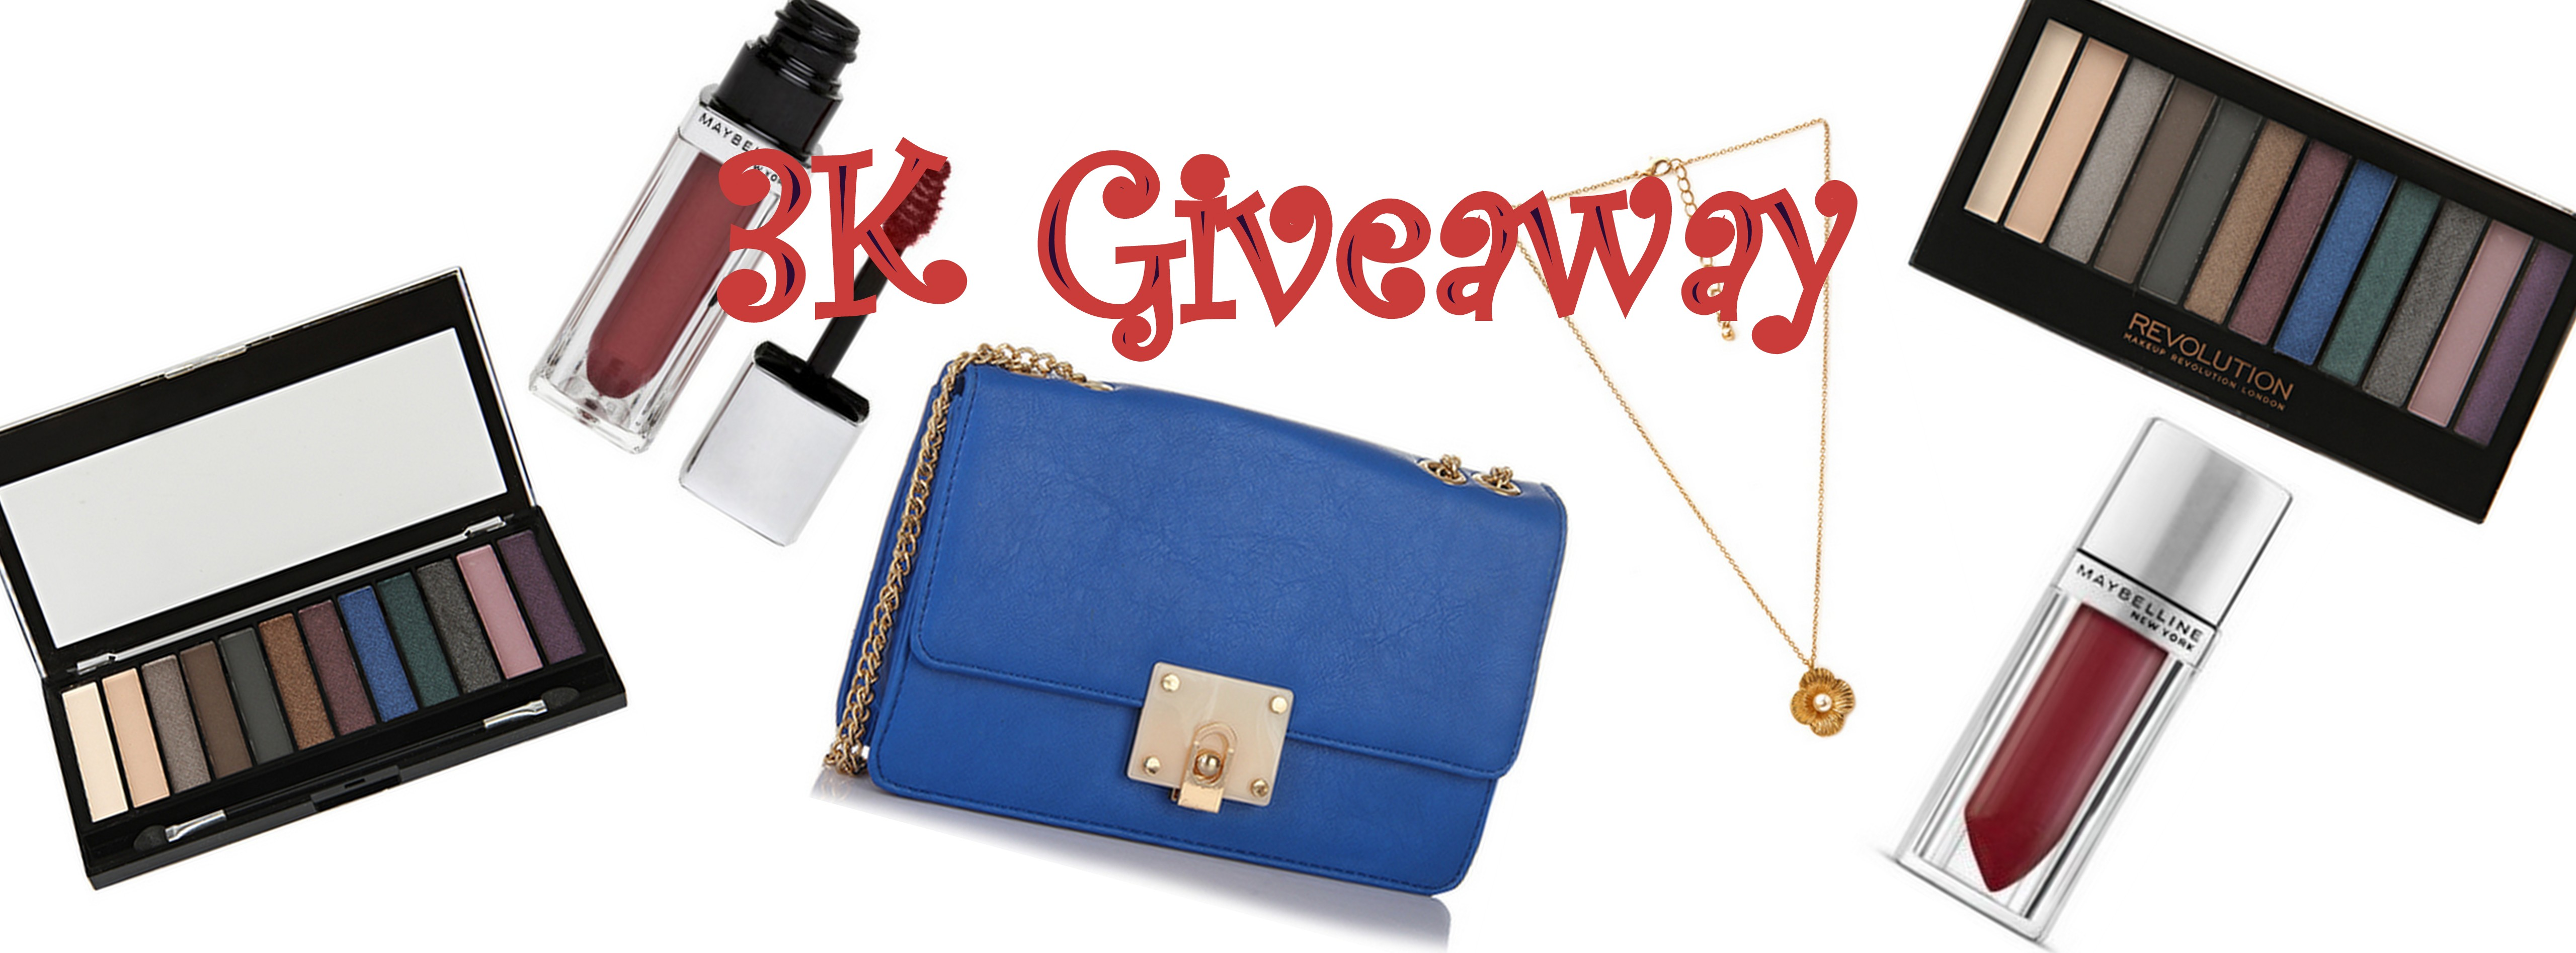 Giveaway for crossing 3K likes on FB